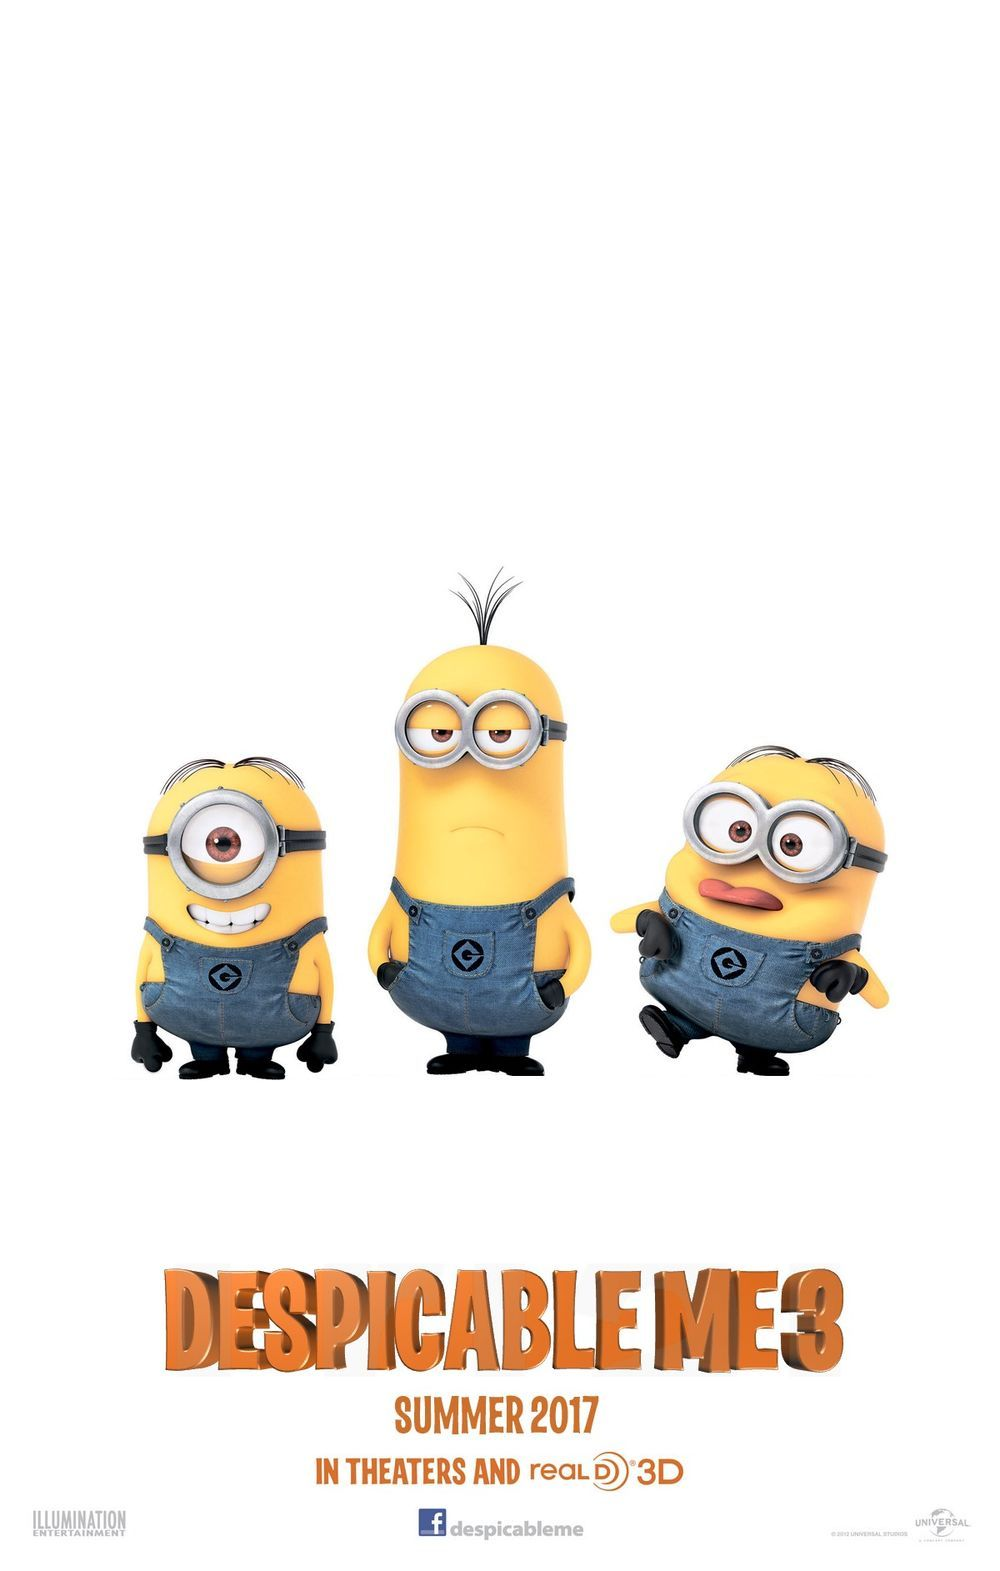 Despicable Me 4 Bobbyisawesome S Idea Despicable Me Despicable Me 3 Full Movies Online Free